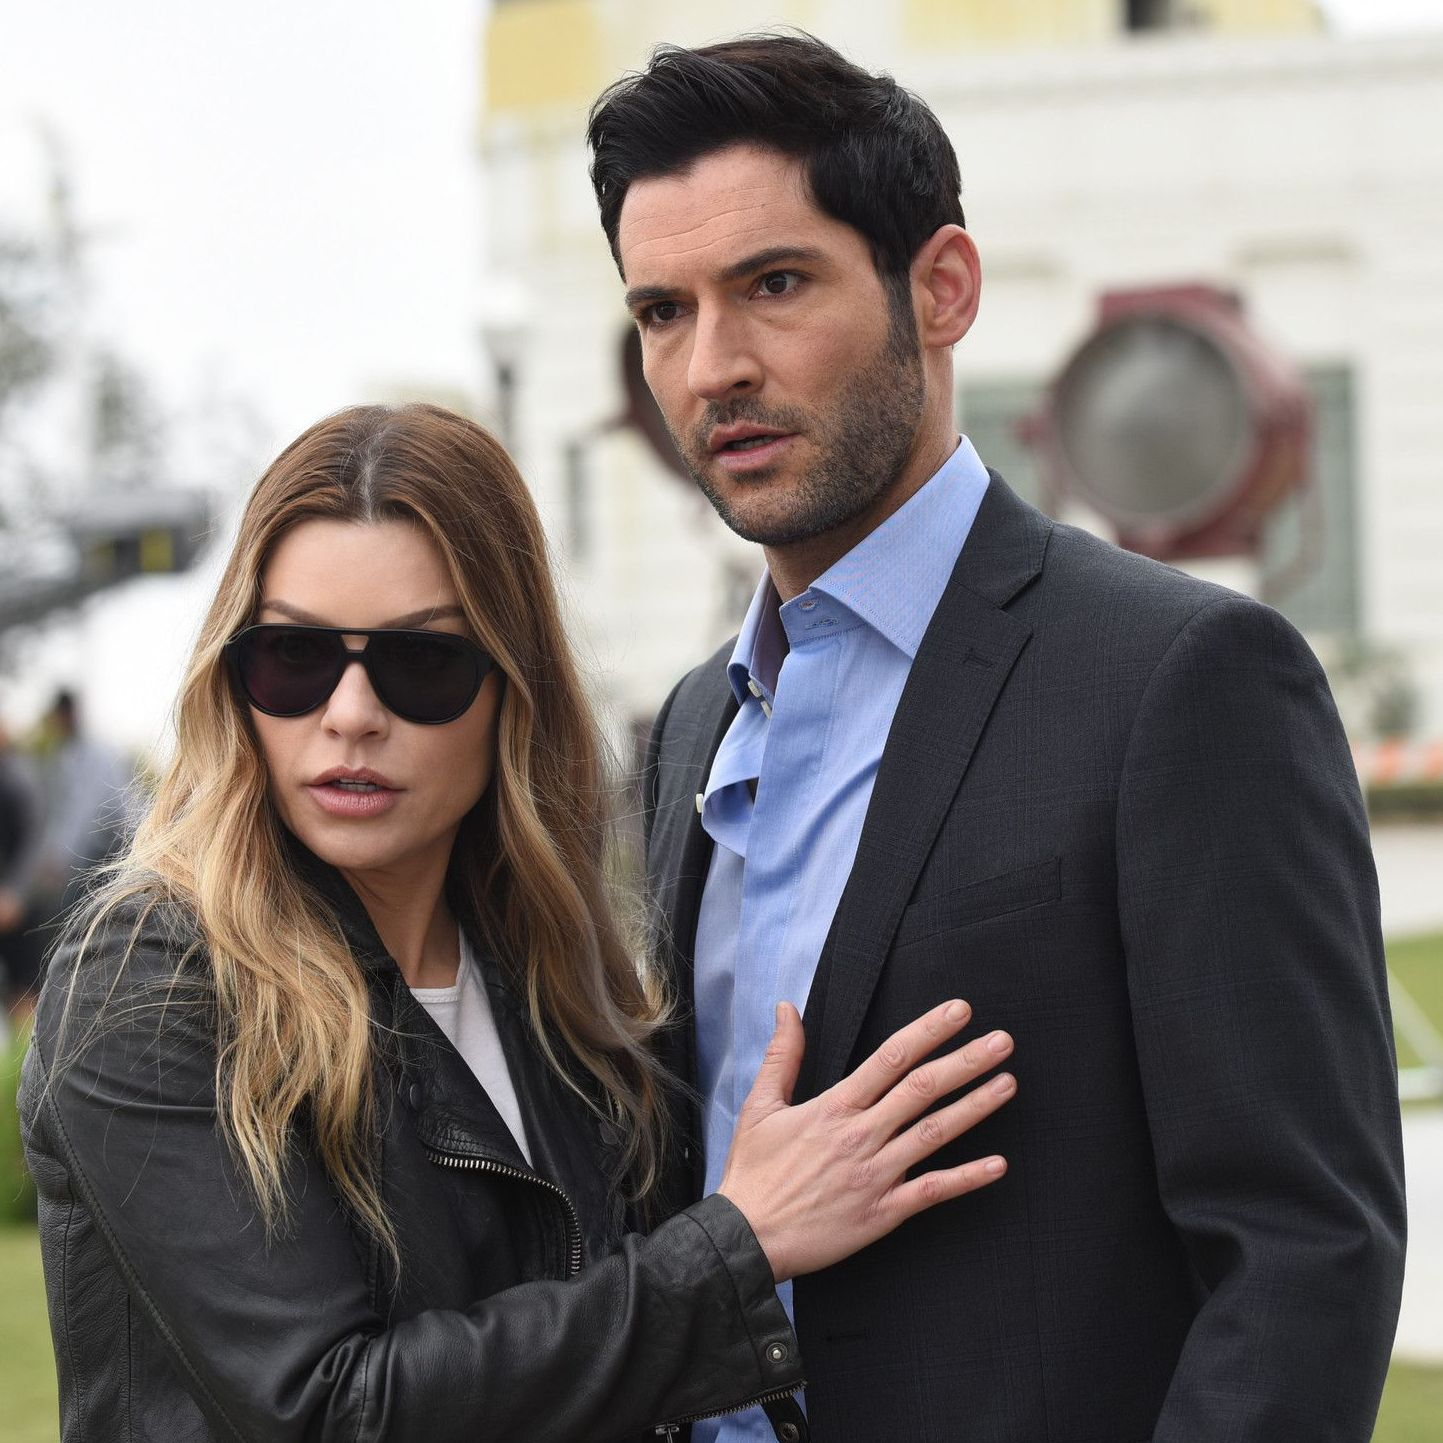 Lucifer Season 4 Promo S: Lucifer Season 4 On Netflix: Release Date, Episodes, Cast